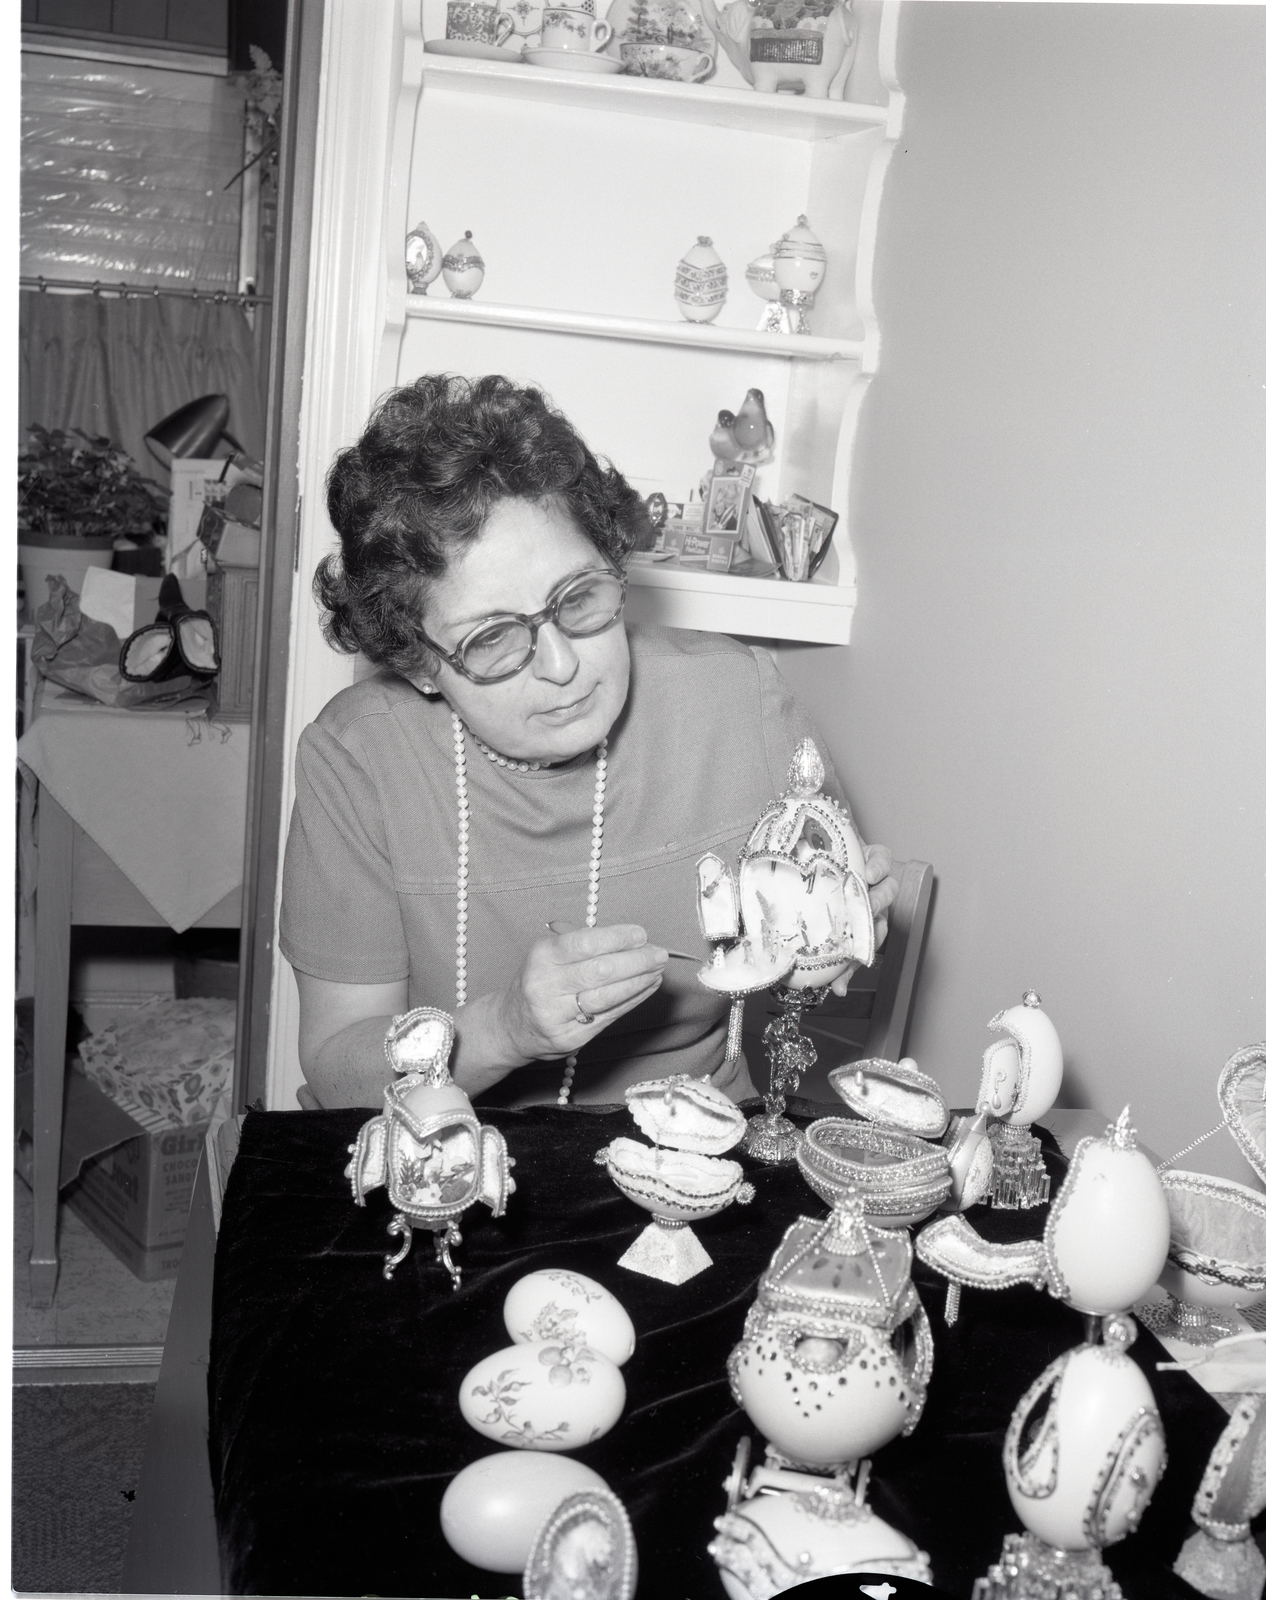 OFF-LABORATORY JOB OF ANNETTE MORAN FOR EASTER STORY FOR